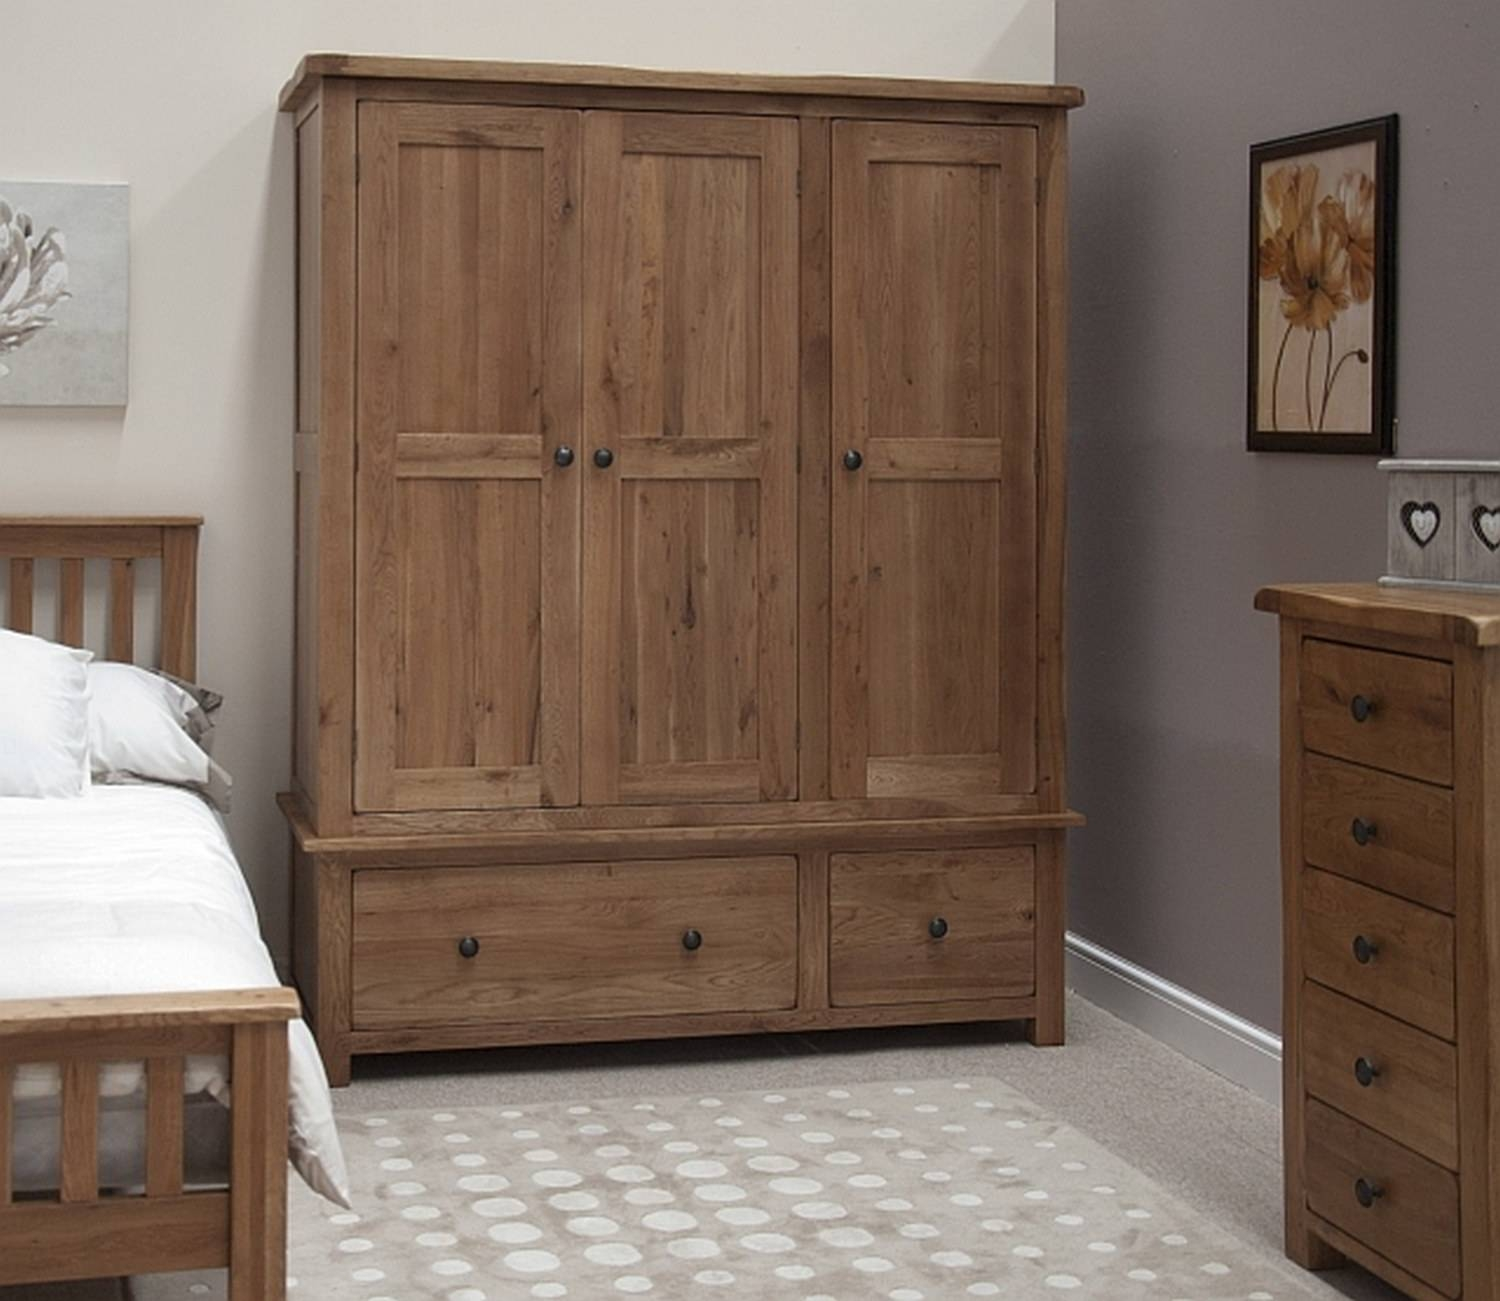 Tilson Solid Oak Bedroom Furniture Large Triple Wardrobe With for Triple Wardrobes With Drawers (Image 14 of 15)